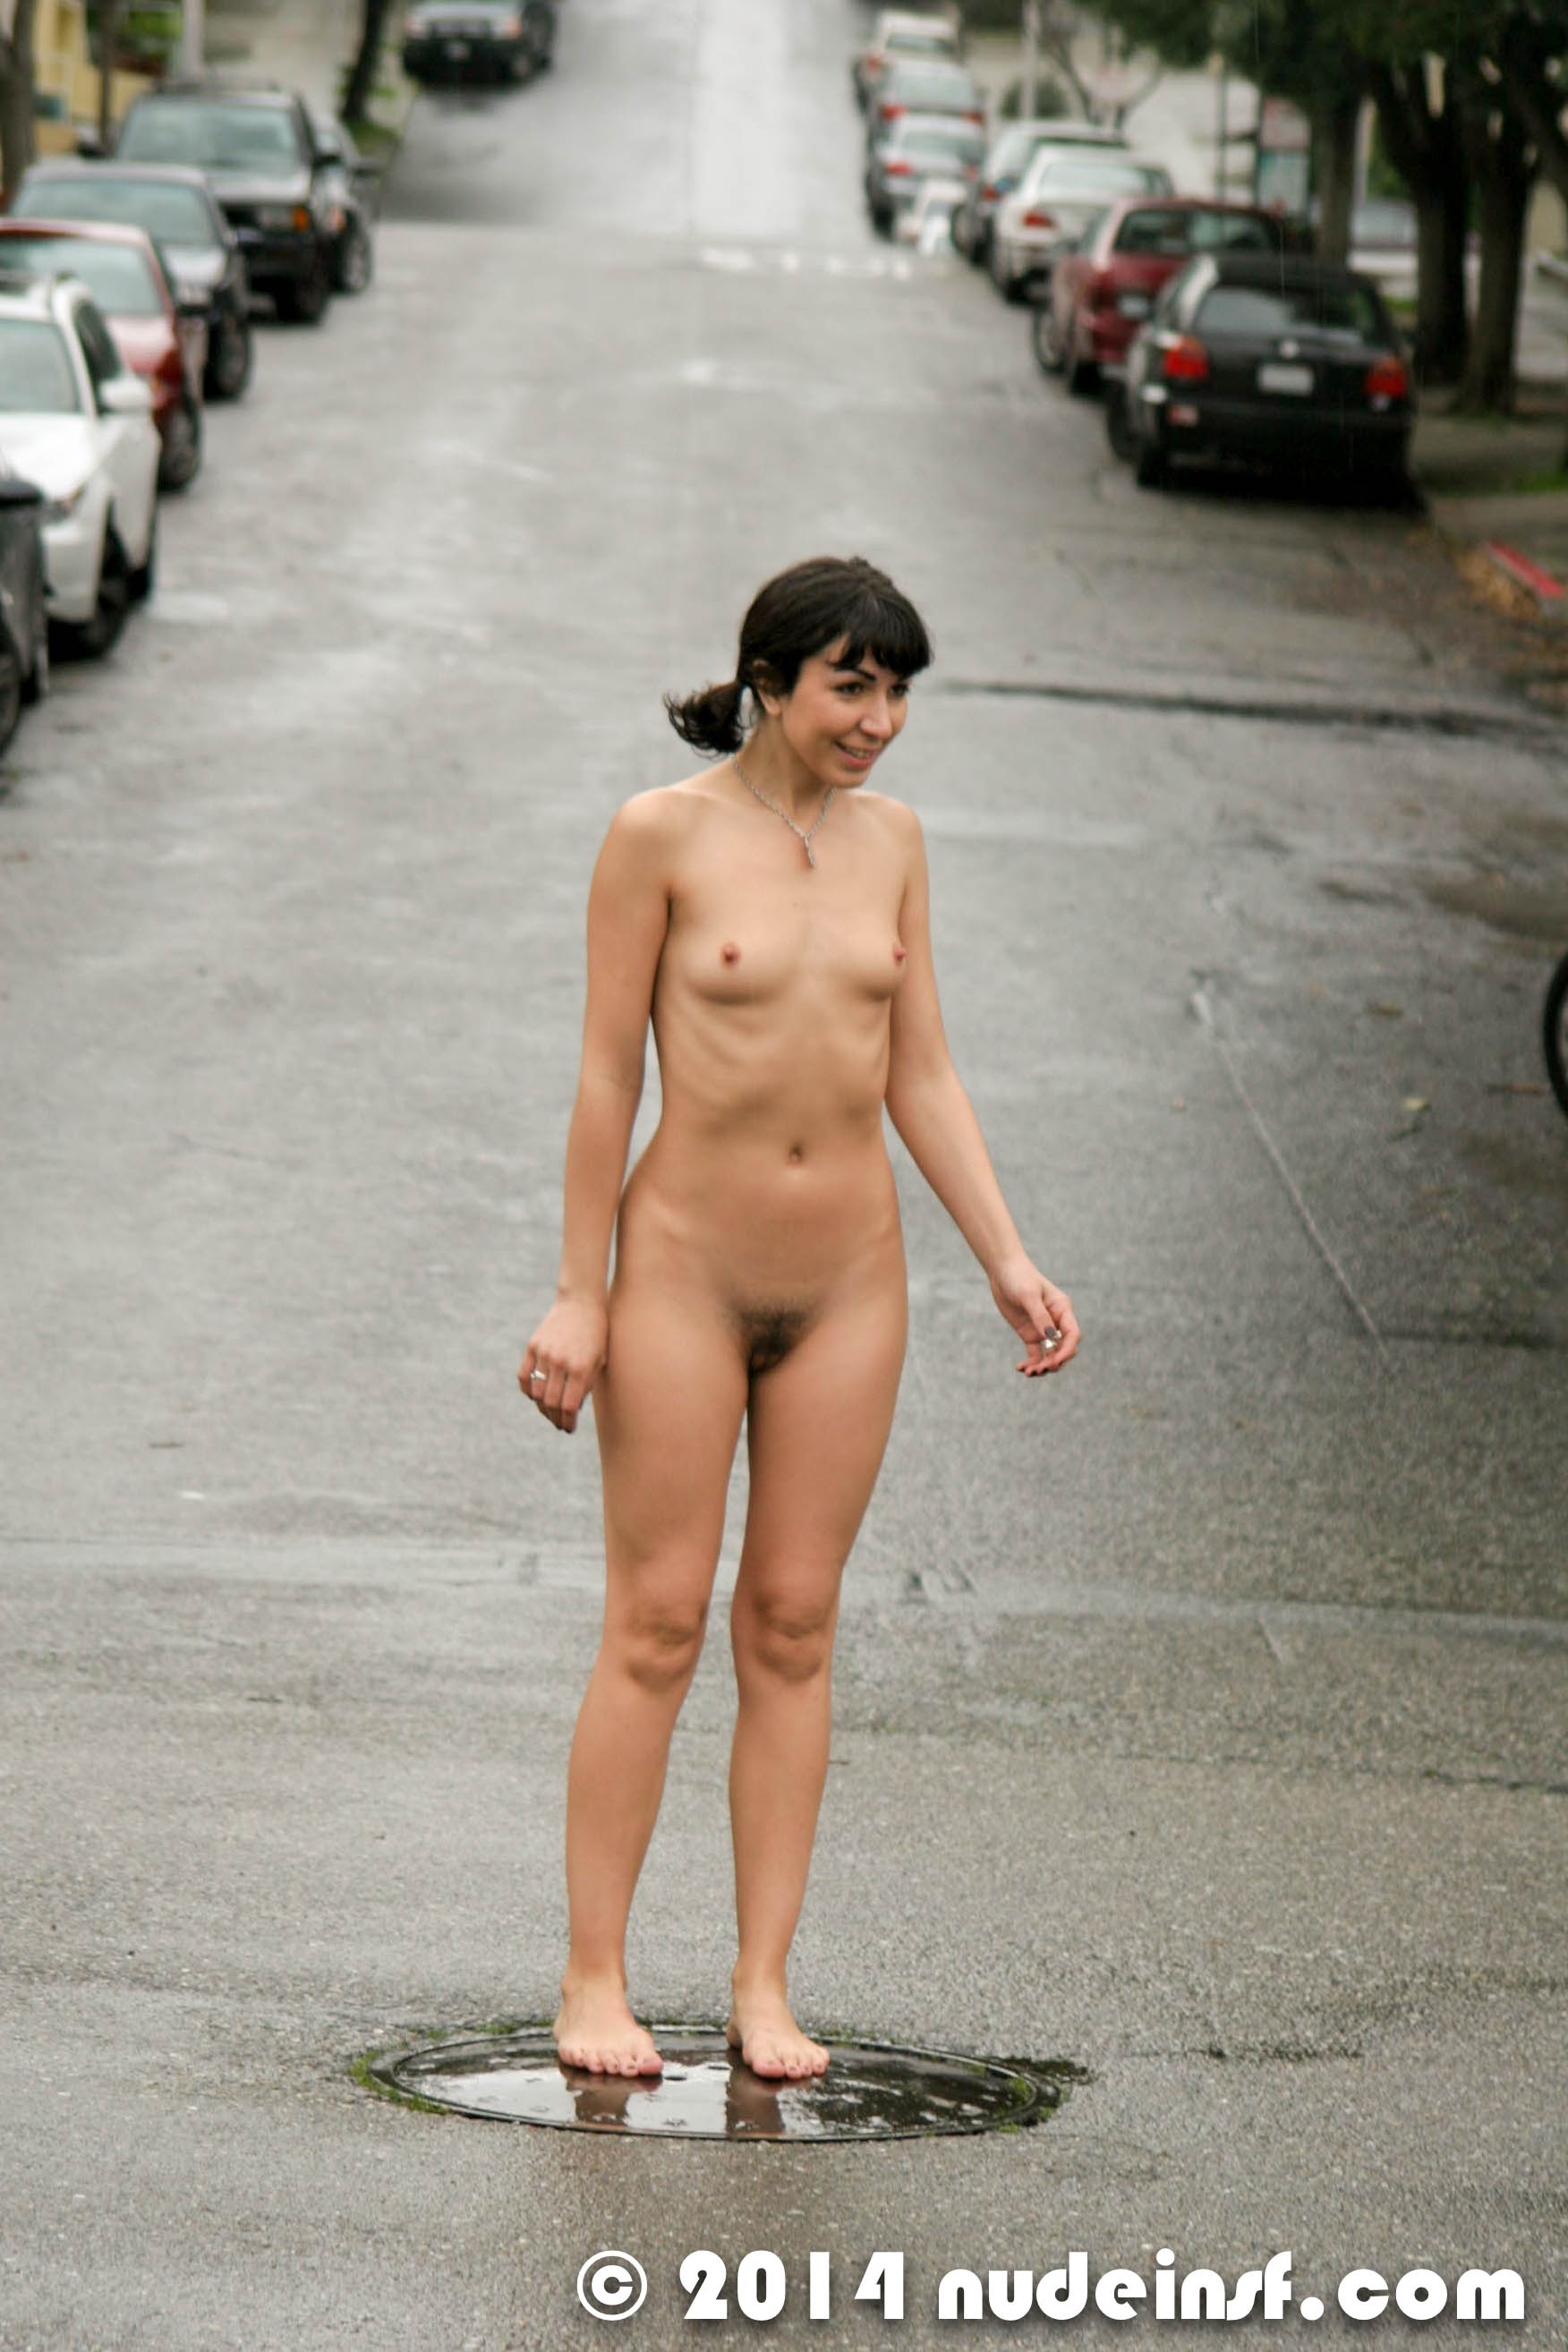 street girl nude amateur free photo